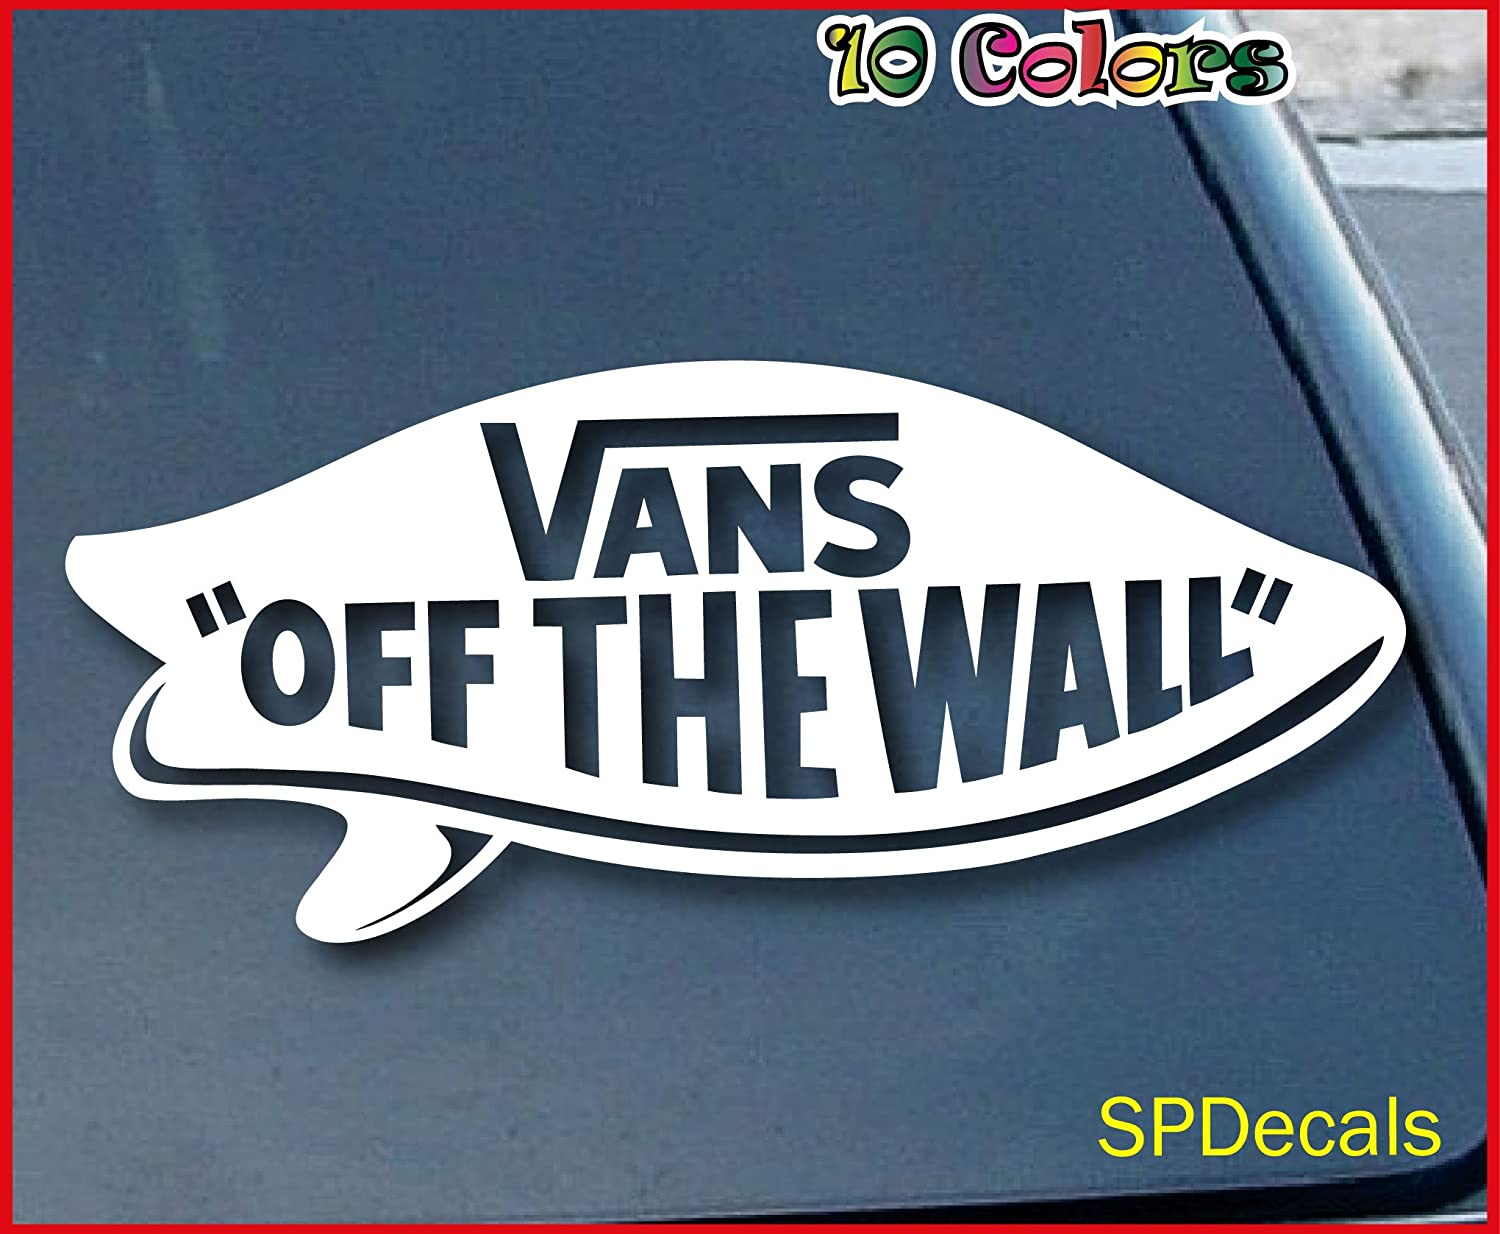 vans off the wall skateboard surfing car window vinyl decal vans off the wall skateboard surfing car window vinyl decal sticker 6